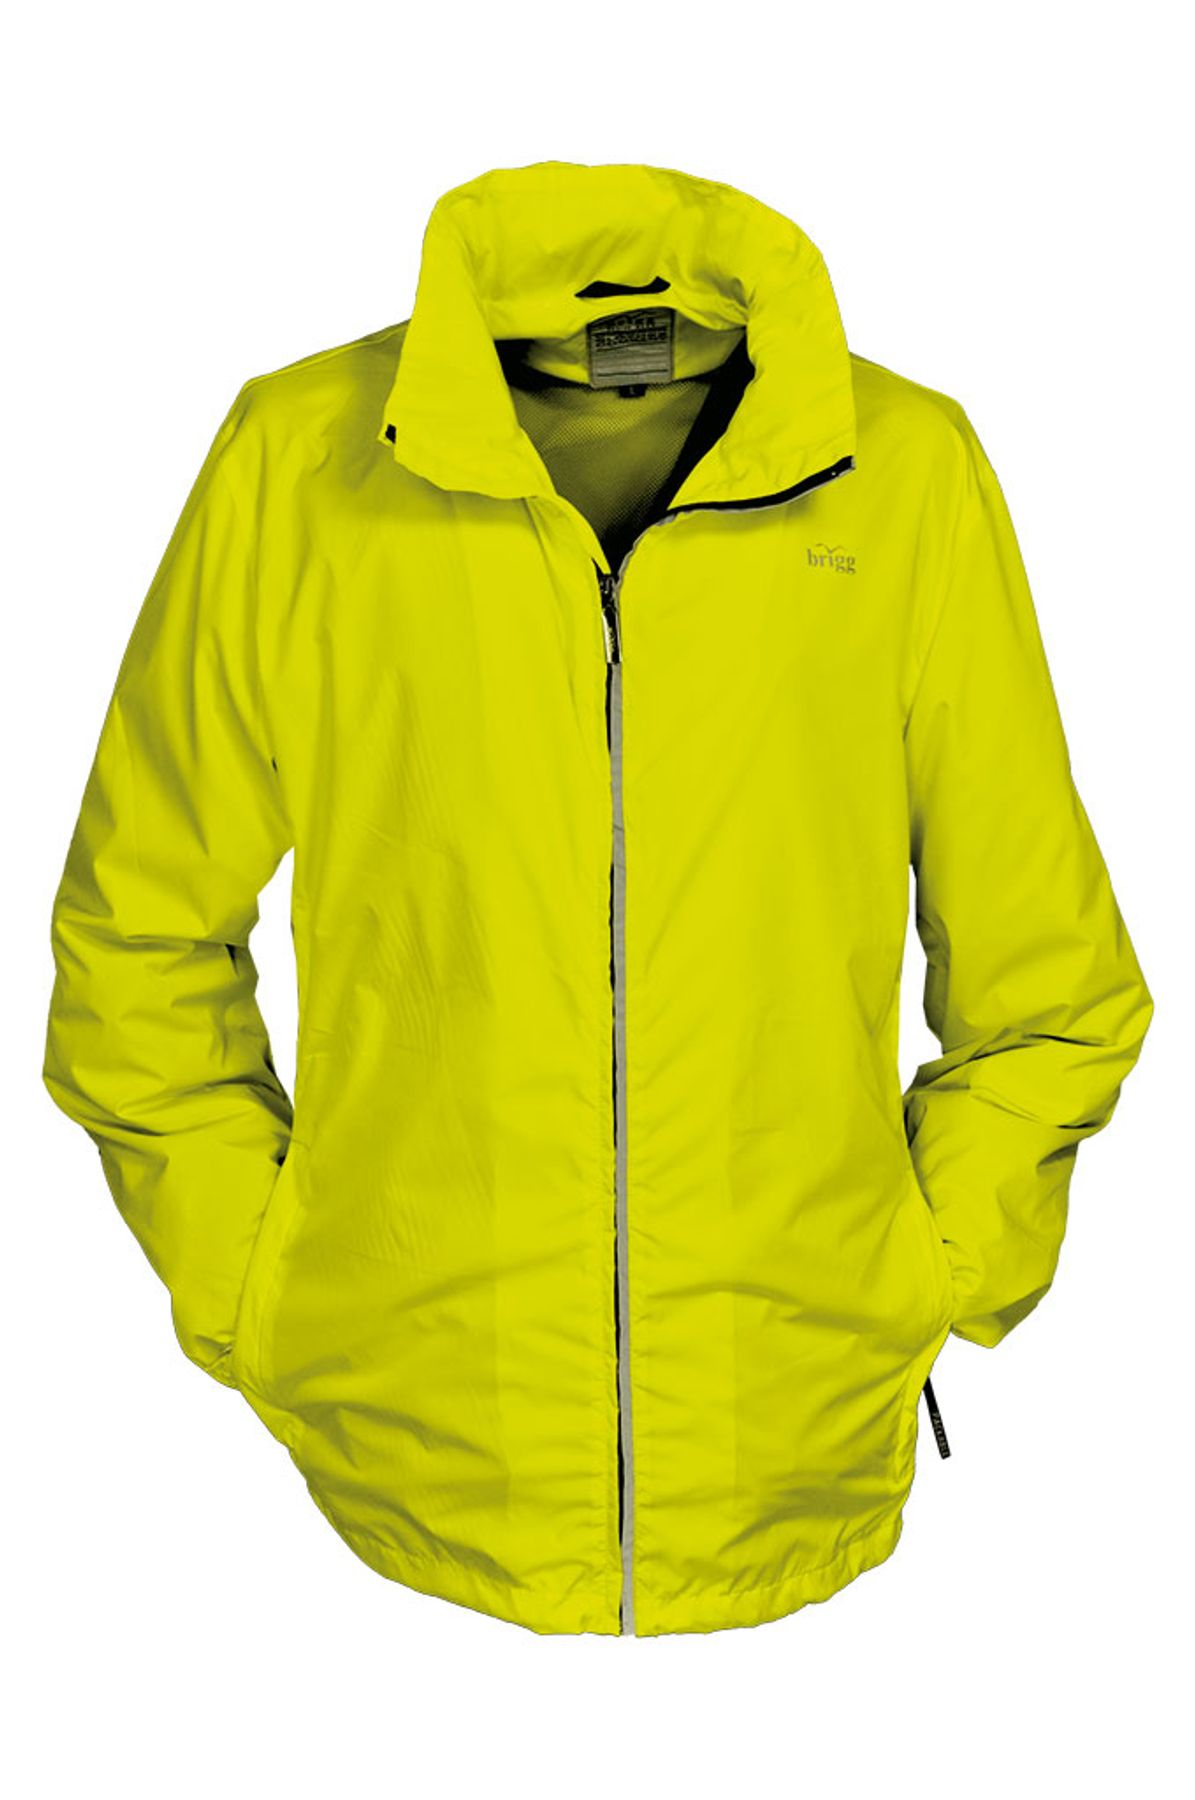 "Brigg -  Unisex Funktionsjacke ""Light Packable"", H/W (10012003) – Bild 3"